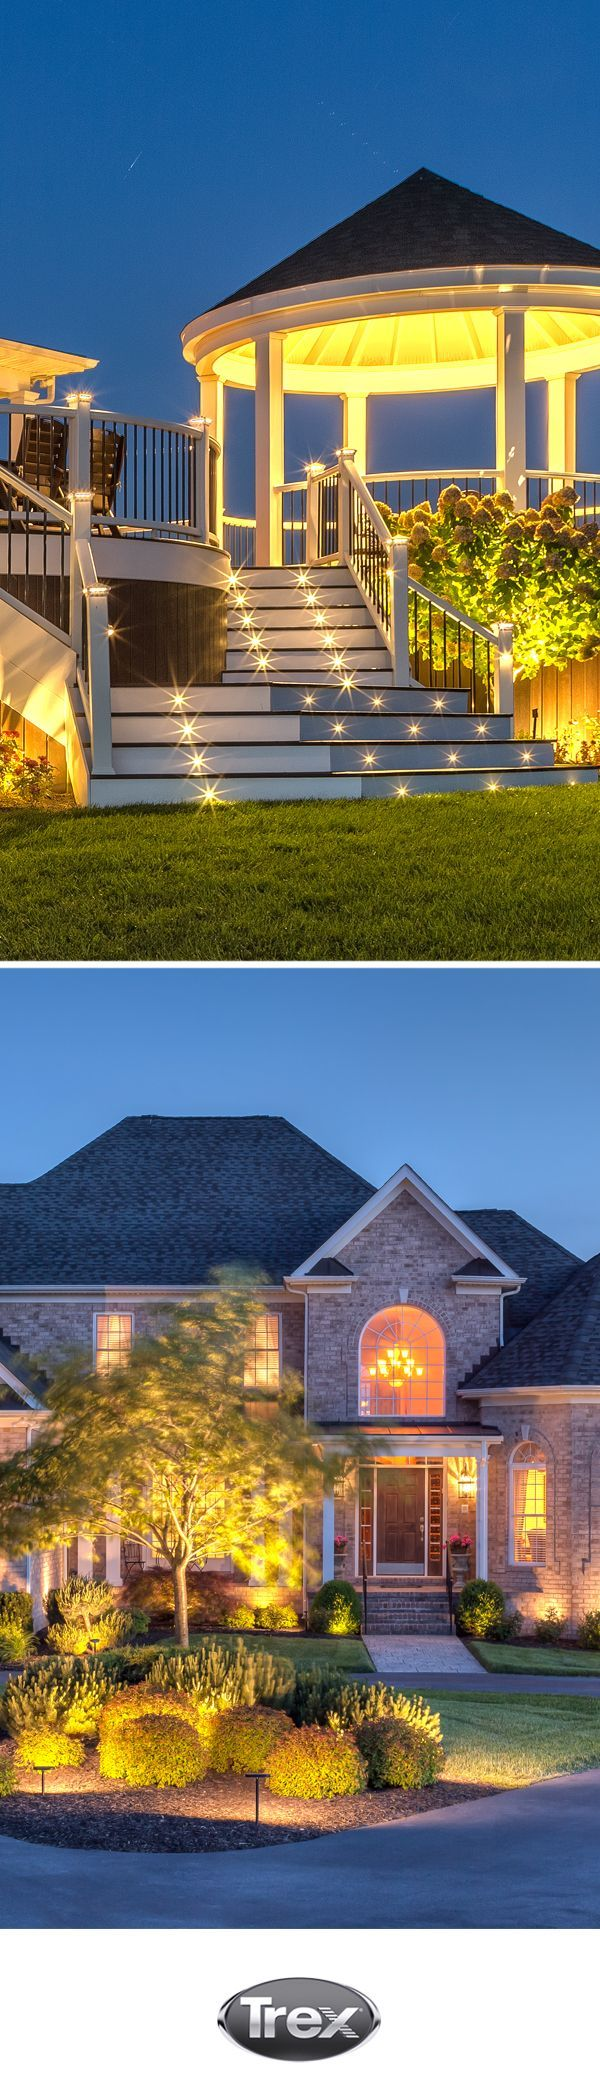 #Trex outdoor lighting can brighten up any landscape. Use a dimmer and timer for ultimate lighting control as the sun sets.